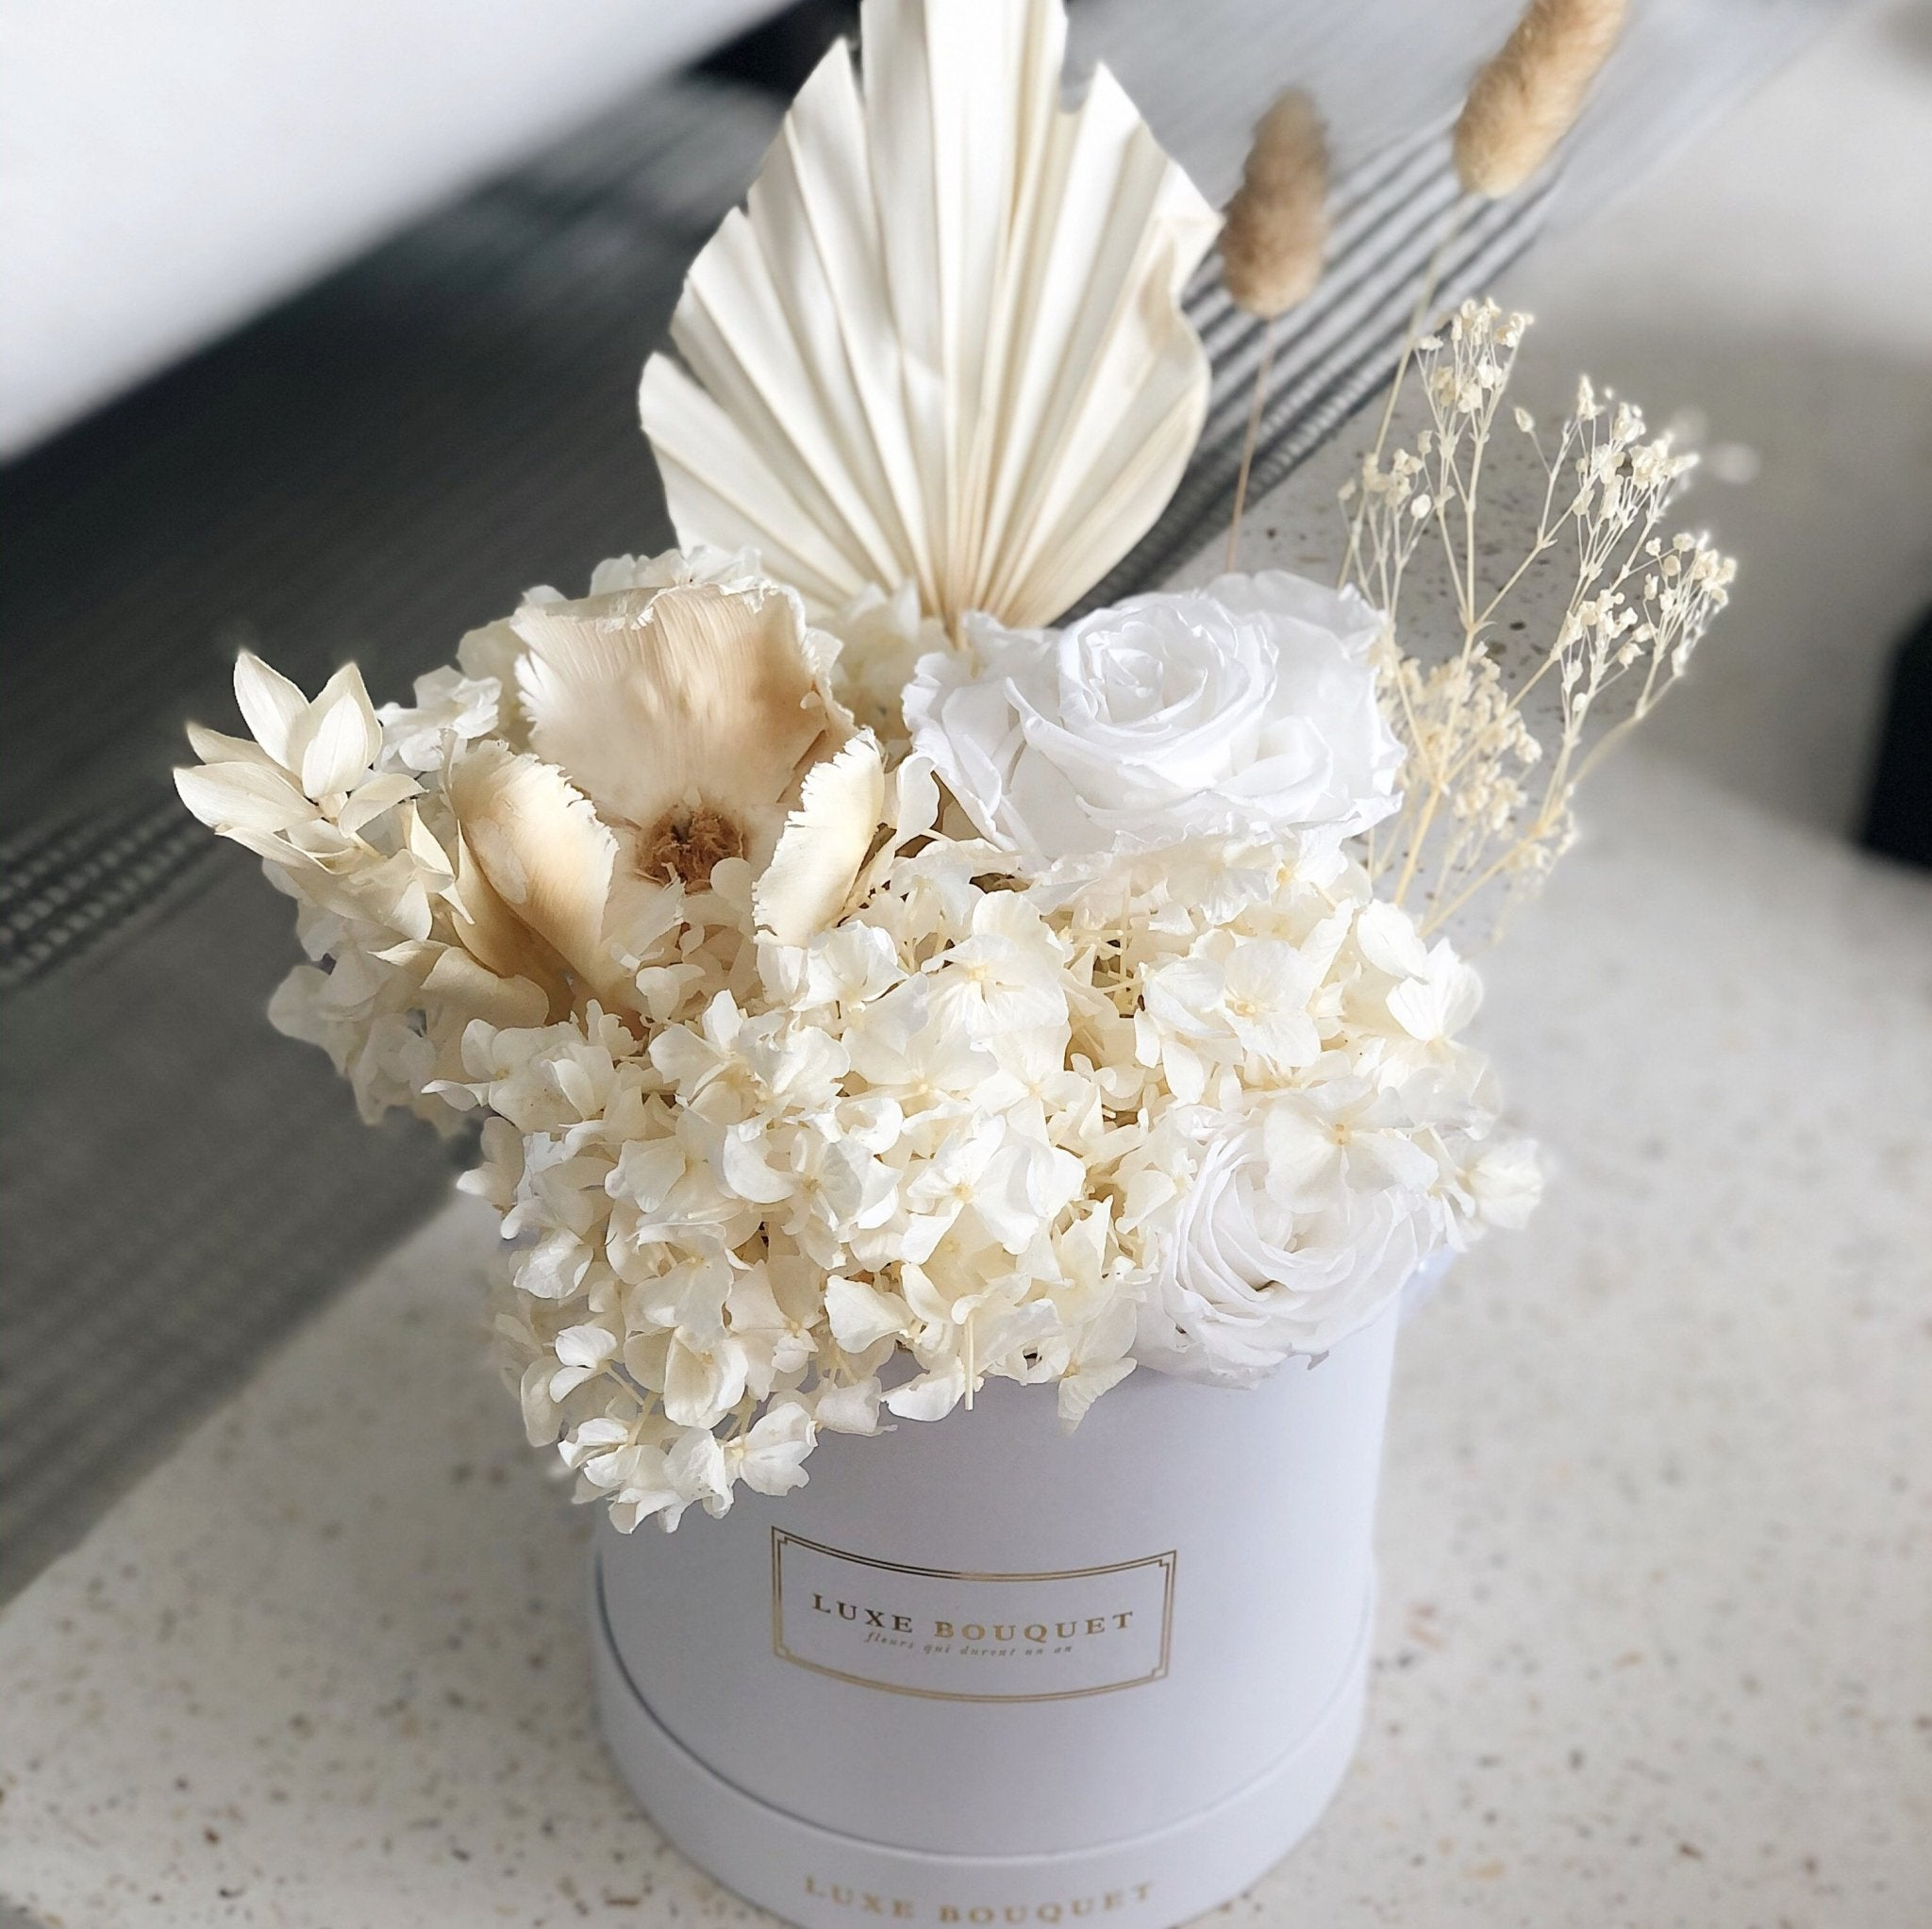 Whipped Cream Bouquet Dried Flowers That Last A Year Luxe Bouquet